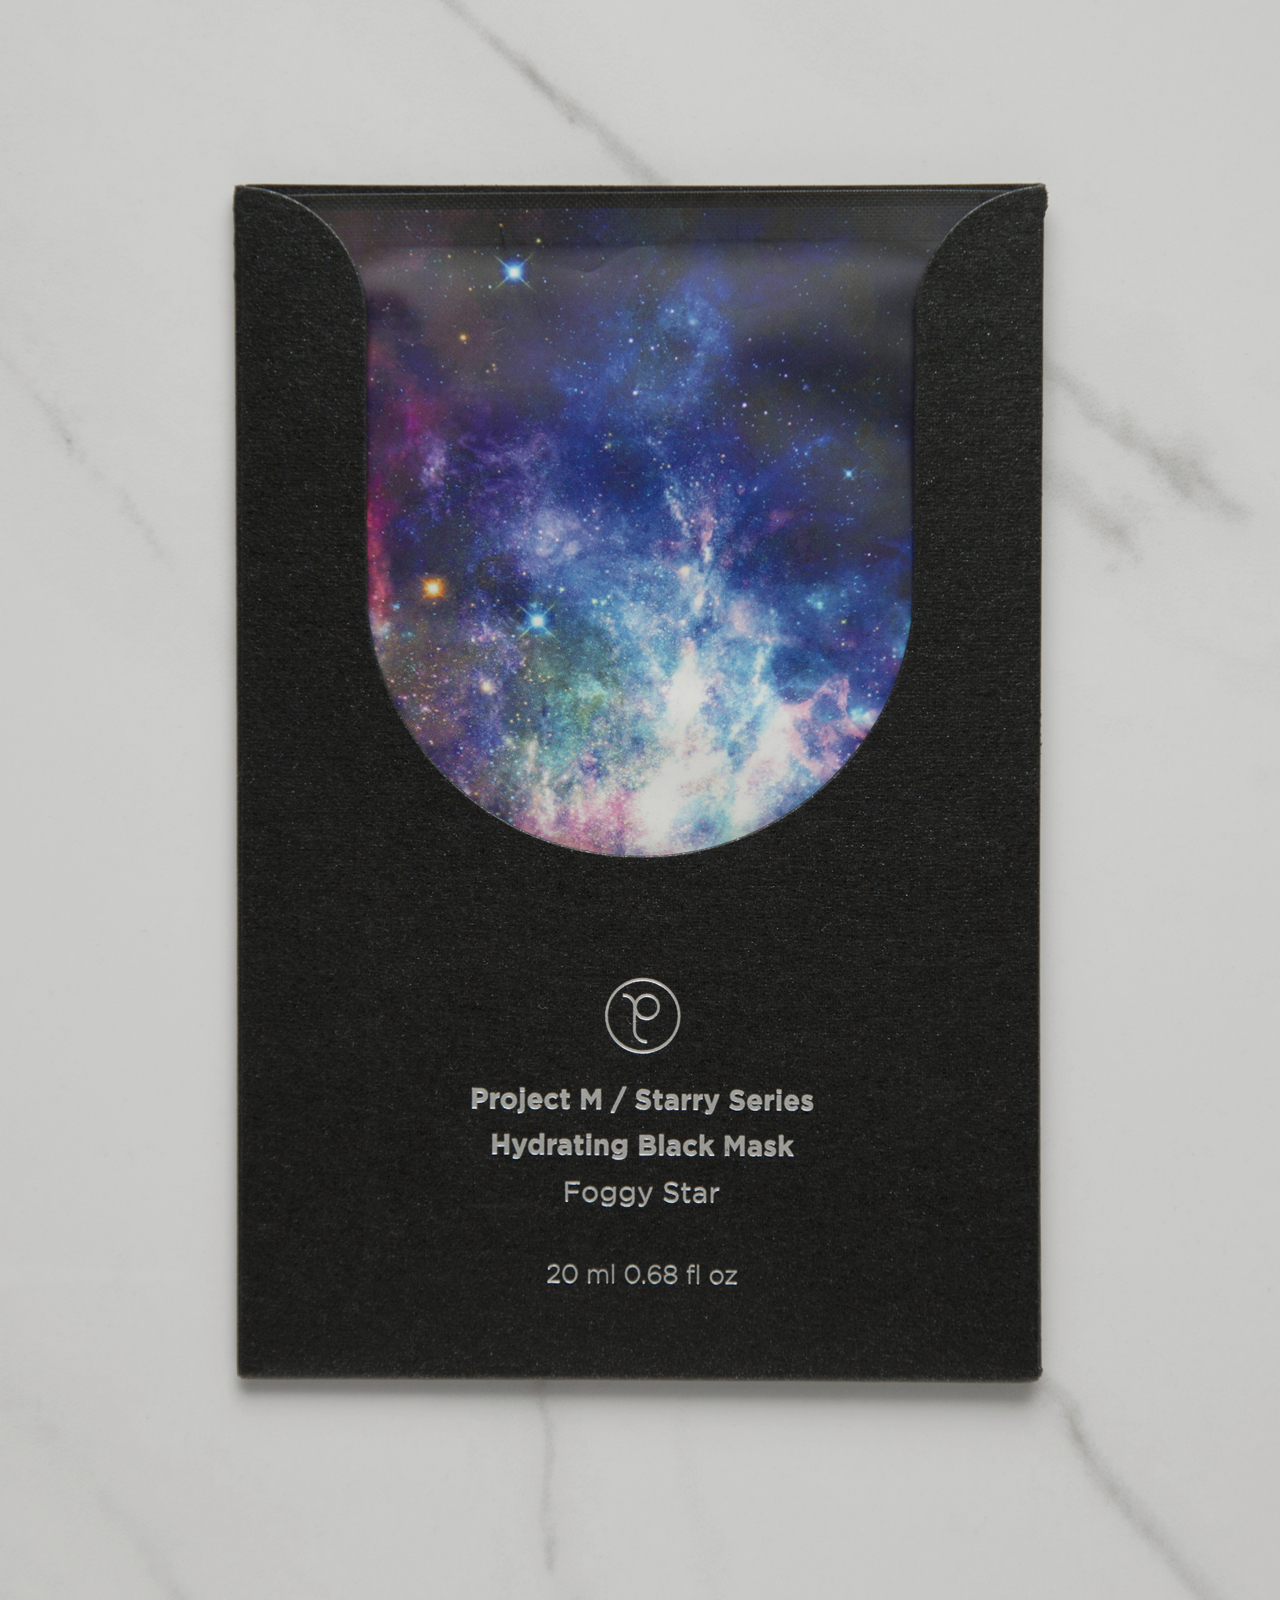 Petite Amie Project M/Starry Series Mask $8